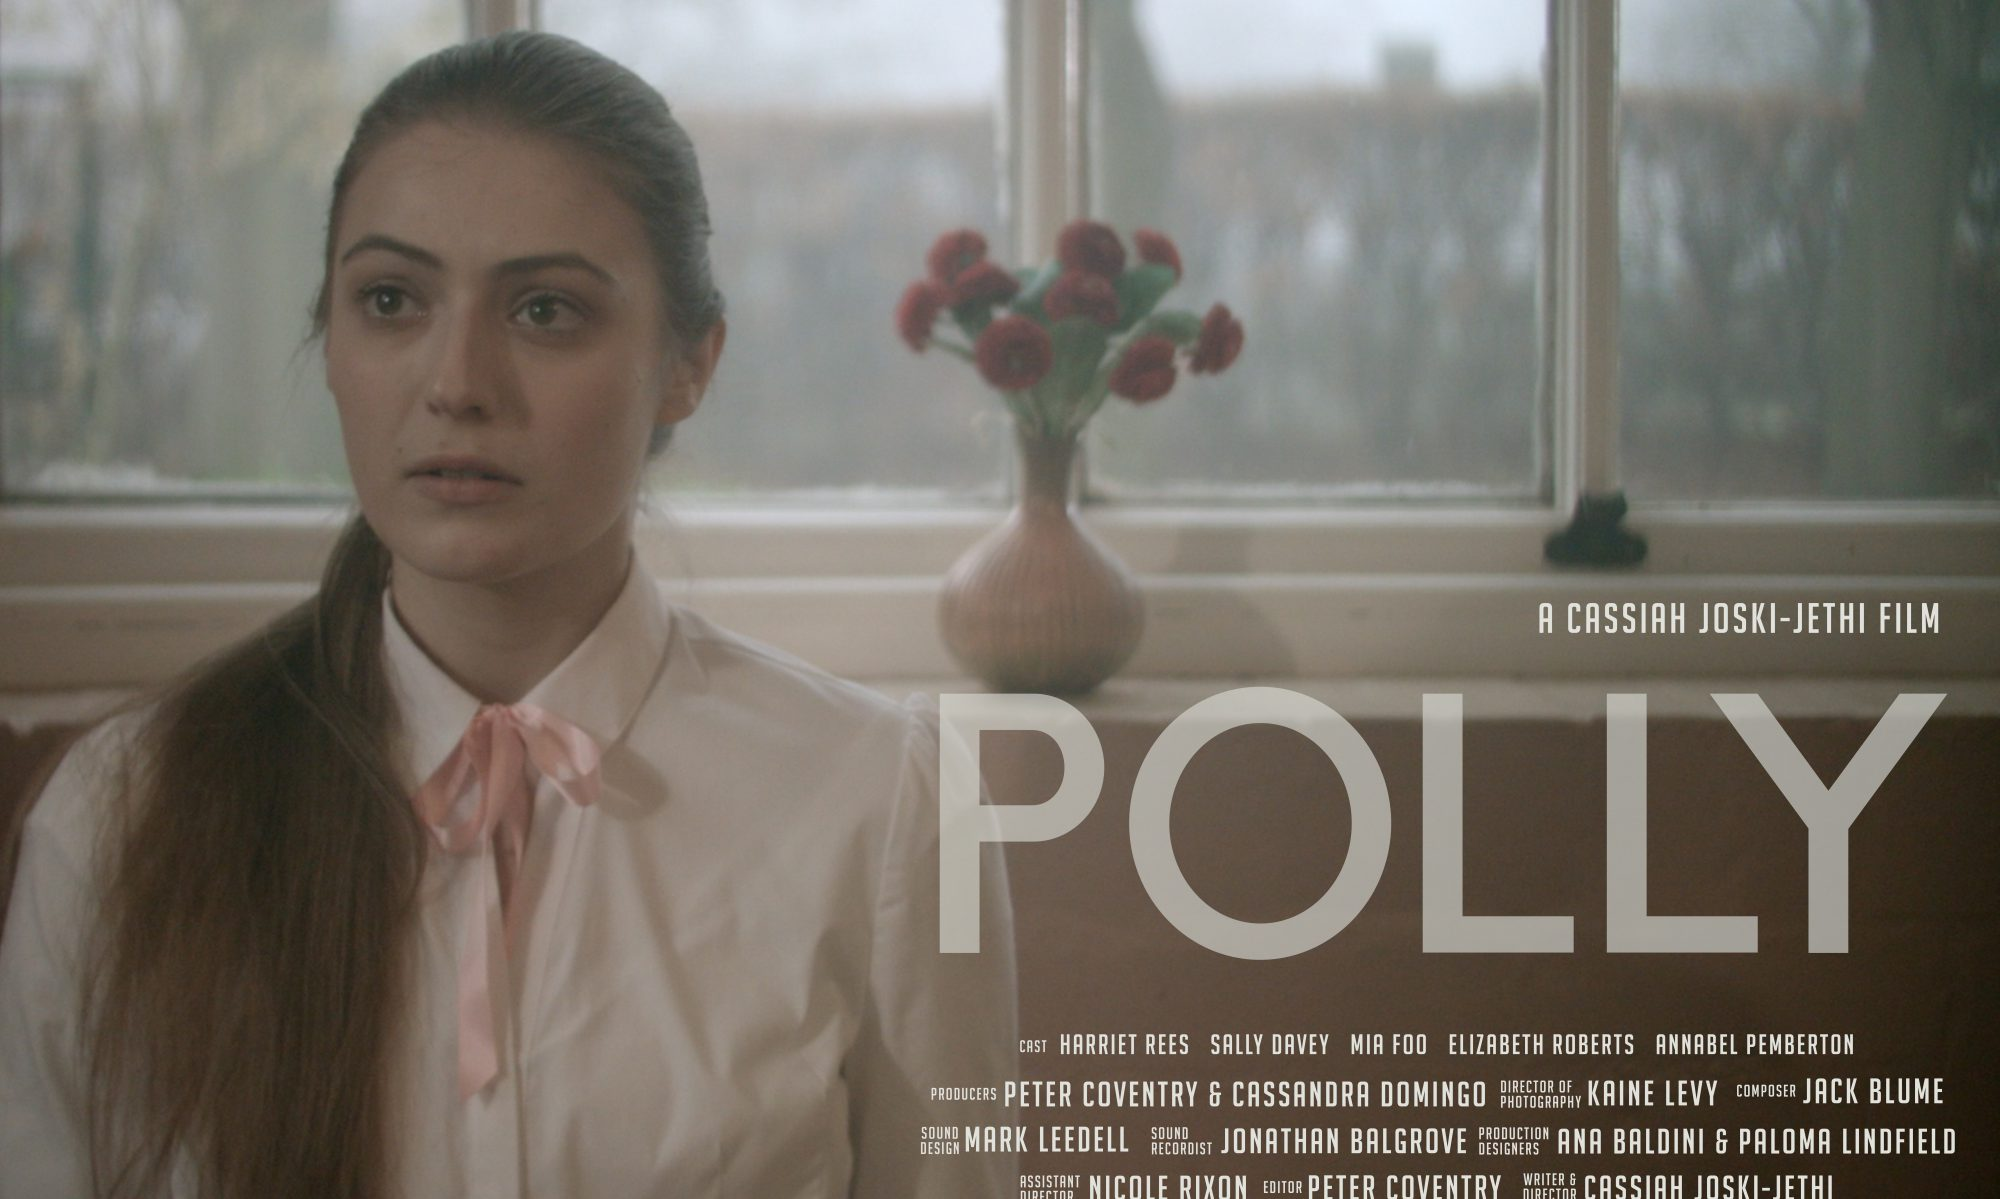 Polly - A Short Film